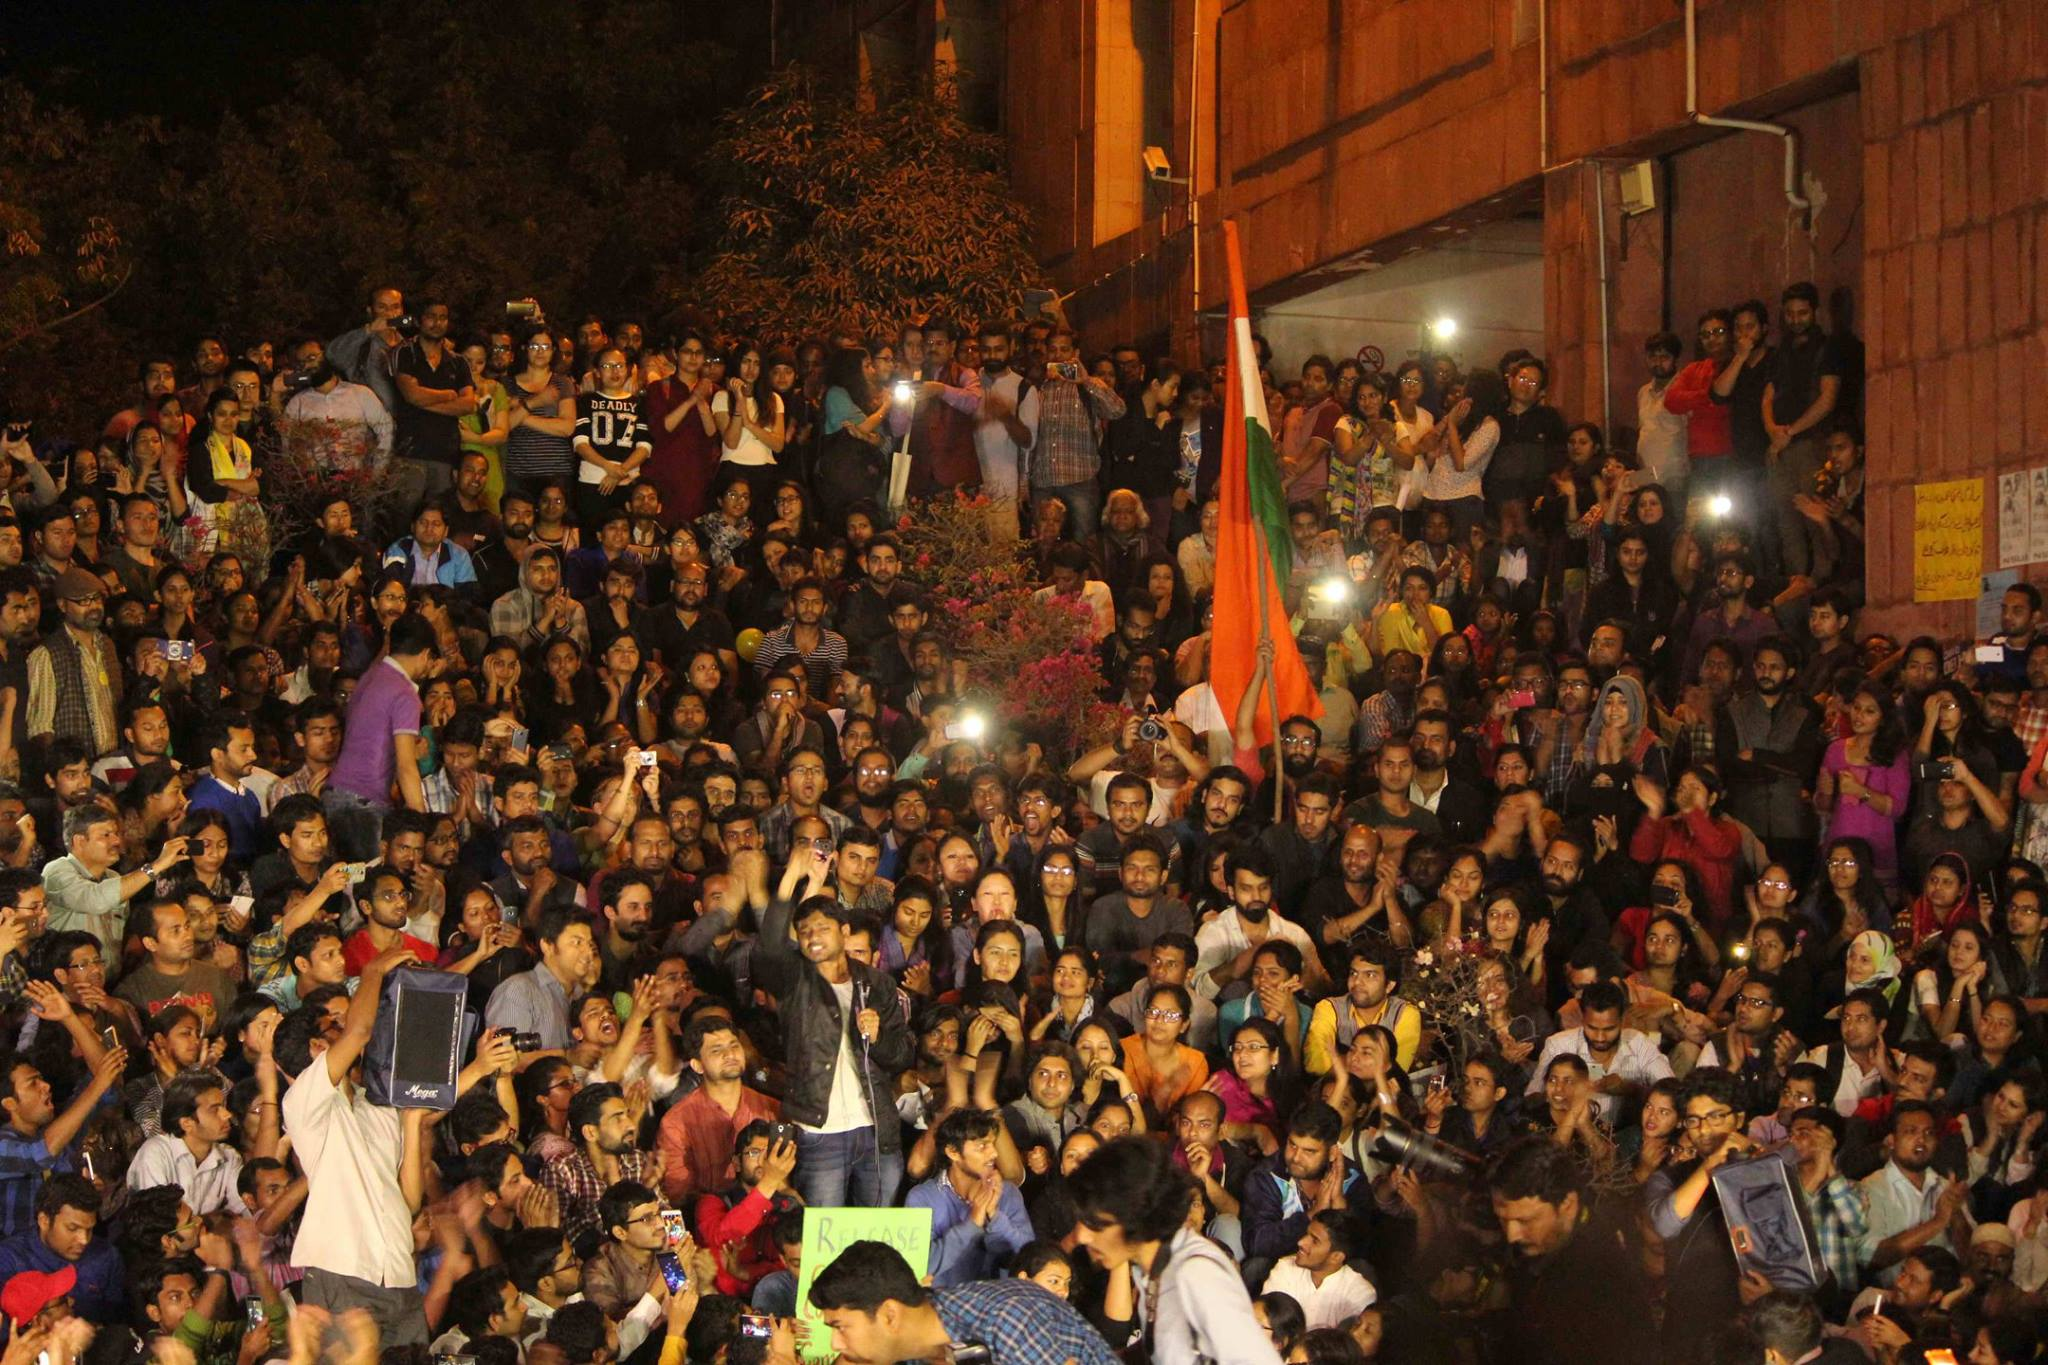 Kanhaiya Kumar receives a warm welcome in JNU the night he received bail and returned to the campus. Credit: Facebook